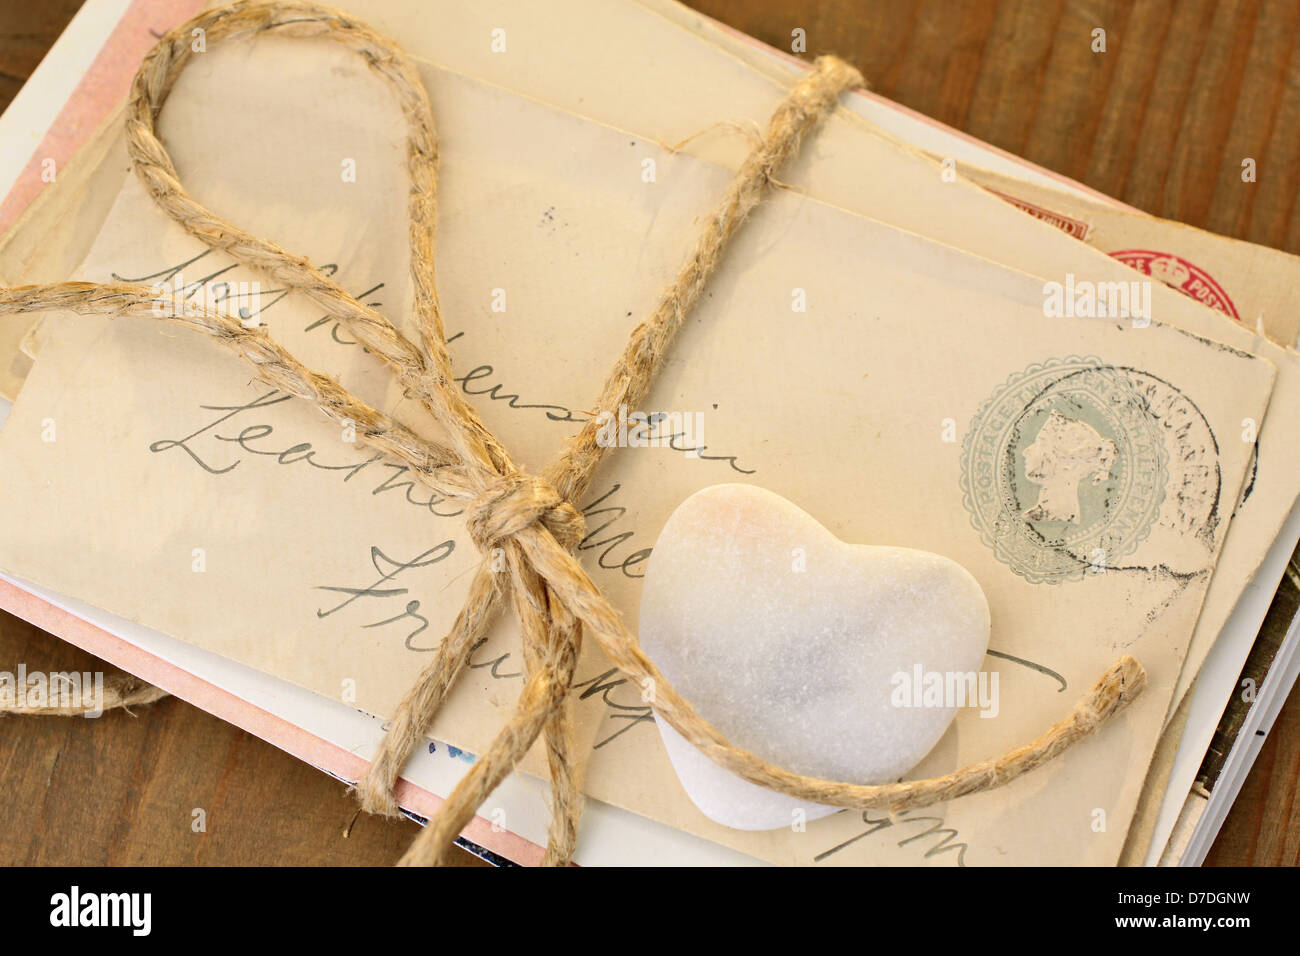 Stone heart with old tied letters on wooden desk - Stock Image